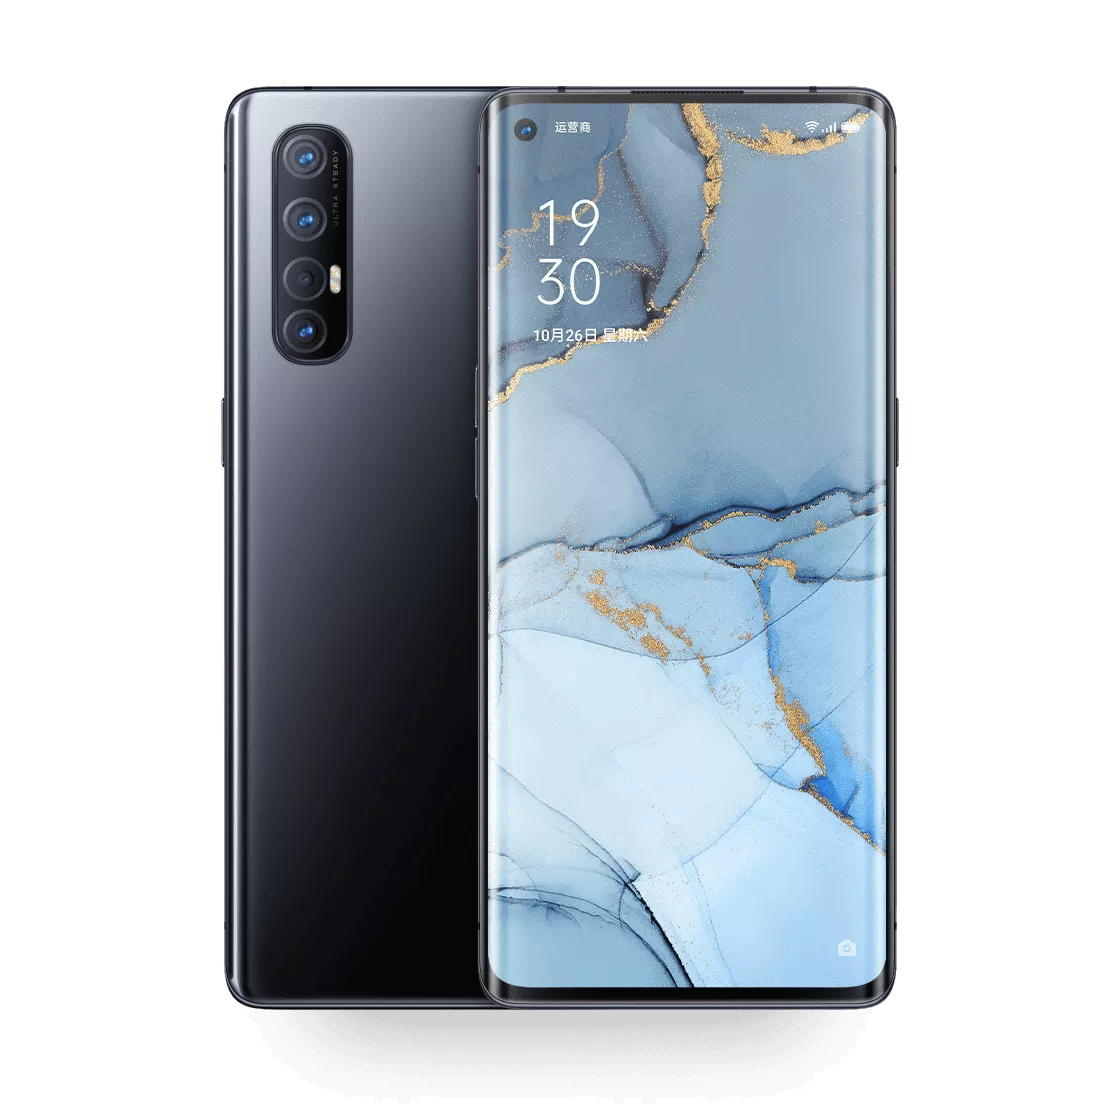 OPPO Reno3 Pro 5G Smartphone CN Version 6.5 inch 90Hz Refresh Rate HDR10+ Frameless NFC Android 10 4025mAh 8GB RAM 128GB ROM Snapdragon 765G Octa Core